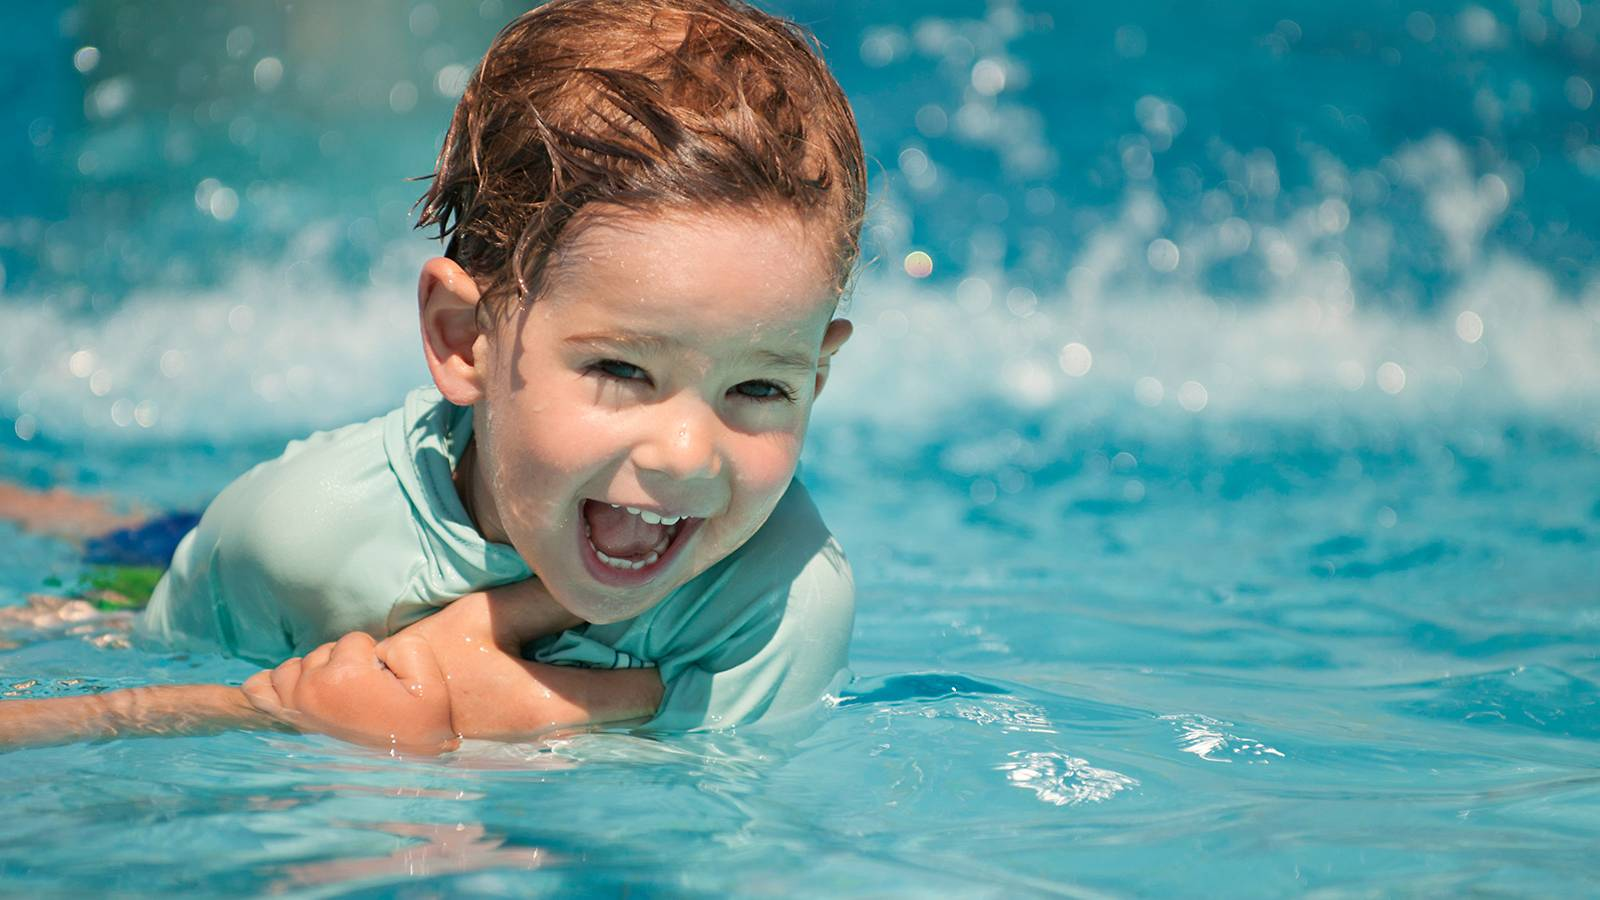 Tots-BUYER'S-GUIDE-11-swim-essentials-for-your-tot (1)